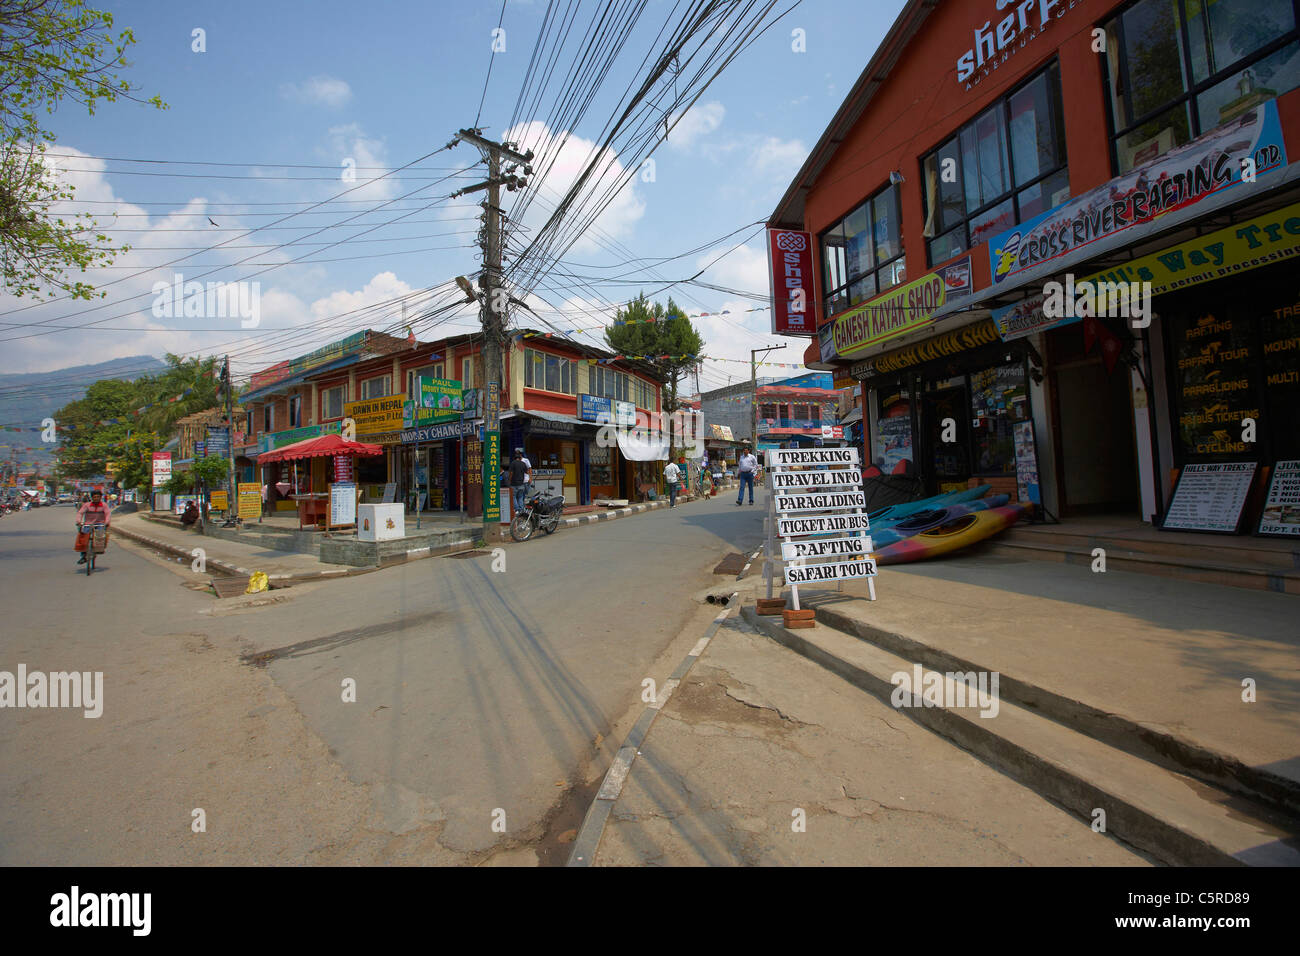 Street scene, advertising on Pokhara lakeside, Nepal, Asia - Stock Image